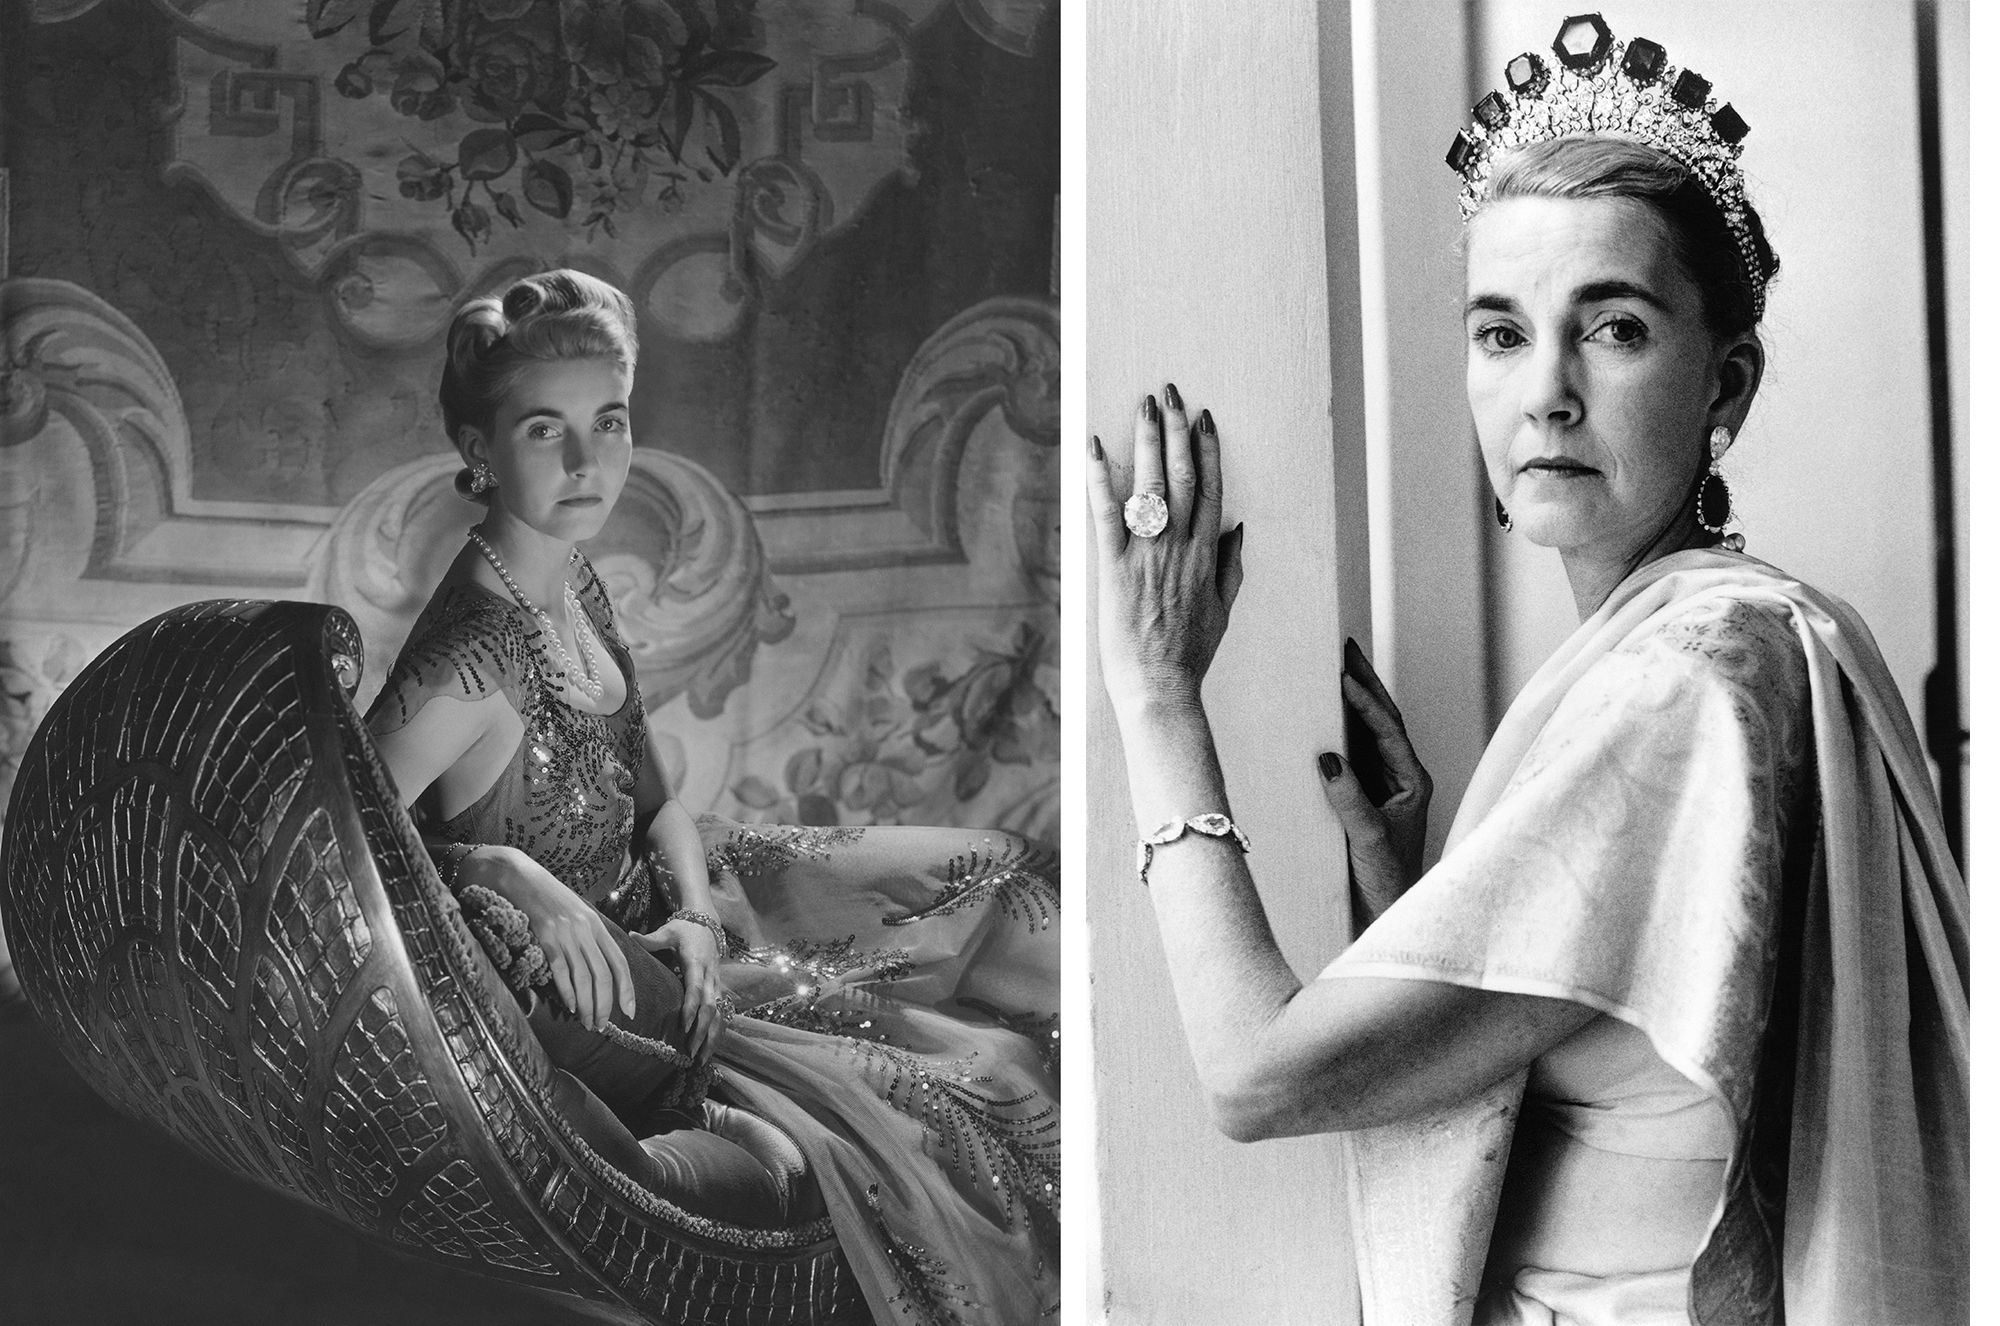 Countess Haugwitz-Reventlow (nee Barbara Hutton). (Photo by Horst P. Horst/Condé Nast via Getty Images)